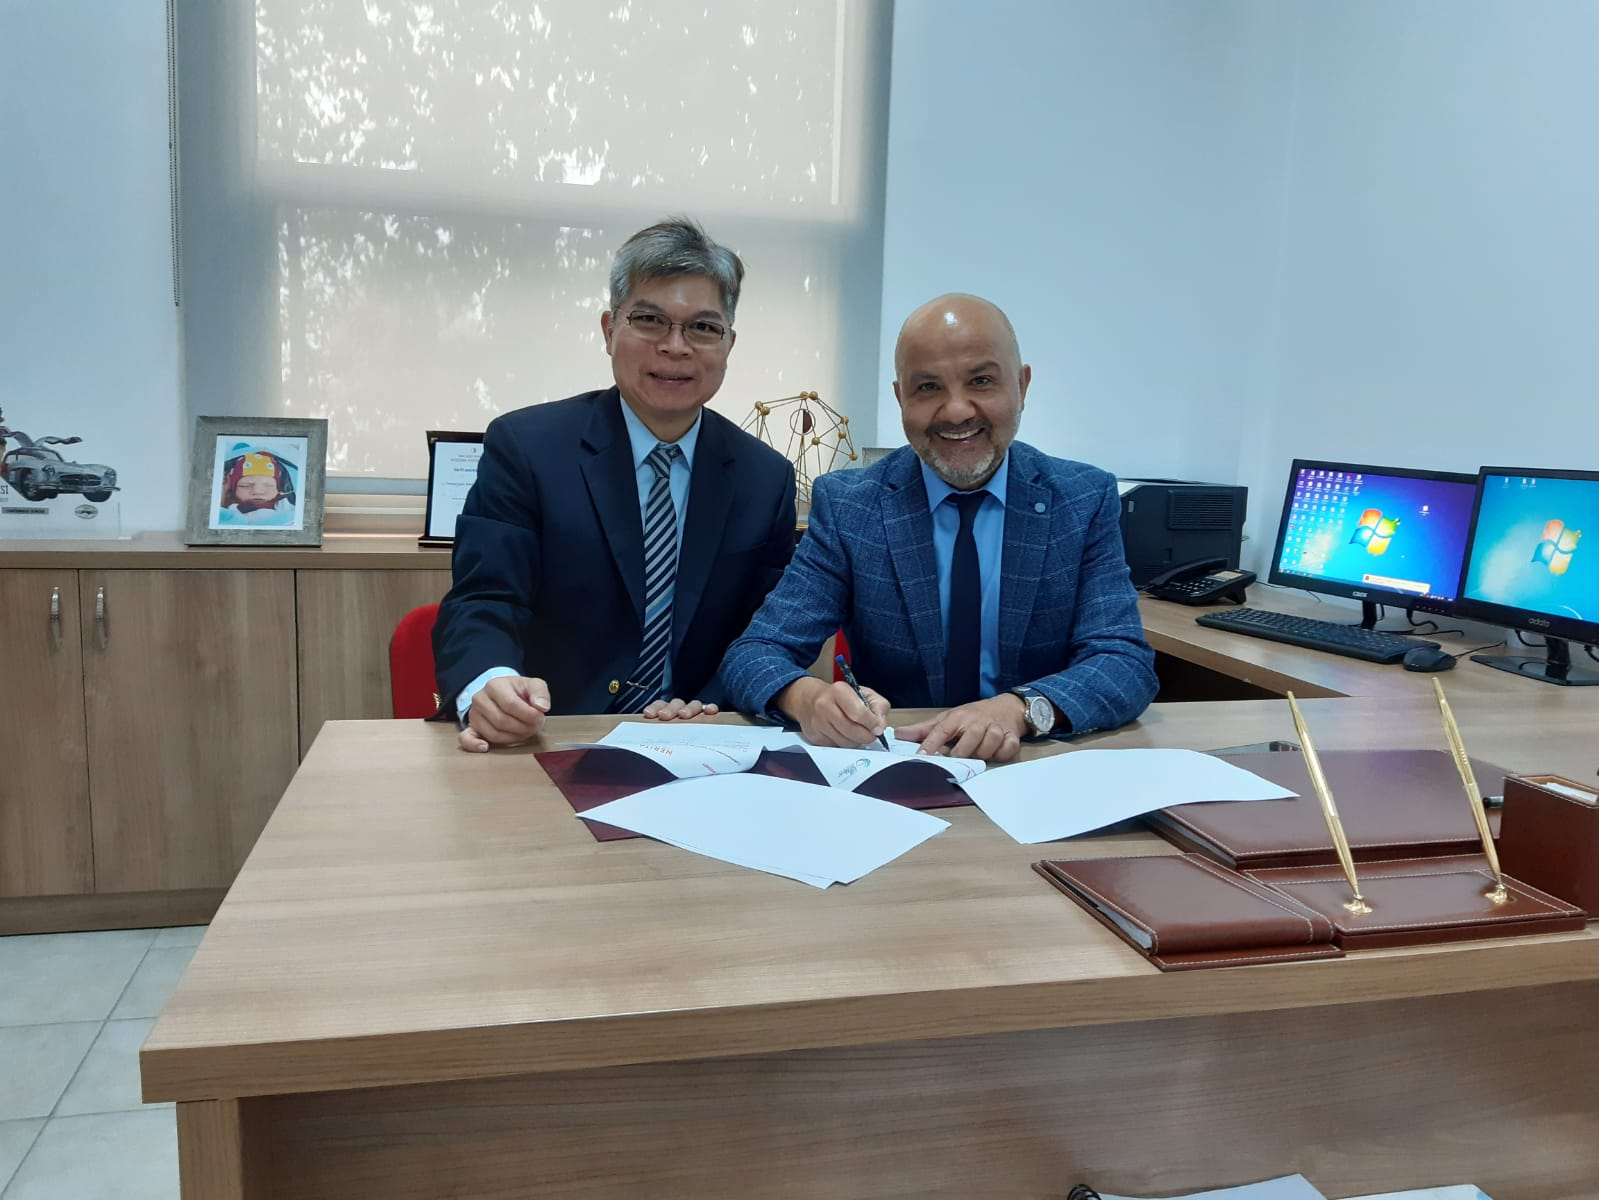 Research on Sleep Medicine Technologies to be conducted… Cooperation Protocol signed between Near East University and International Sleep Medicine Technology Association